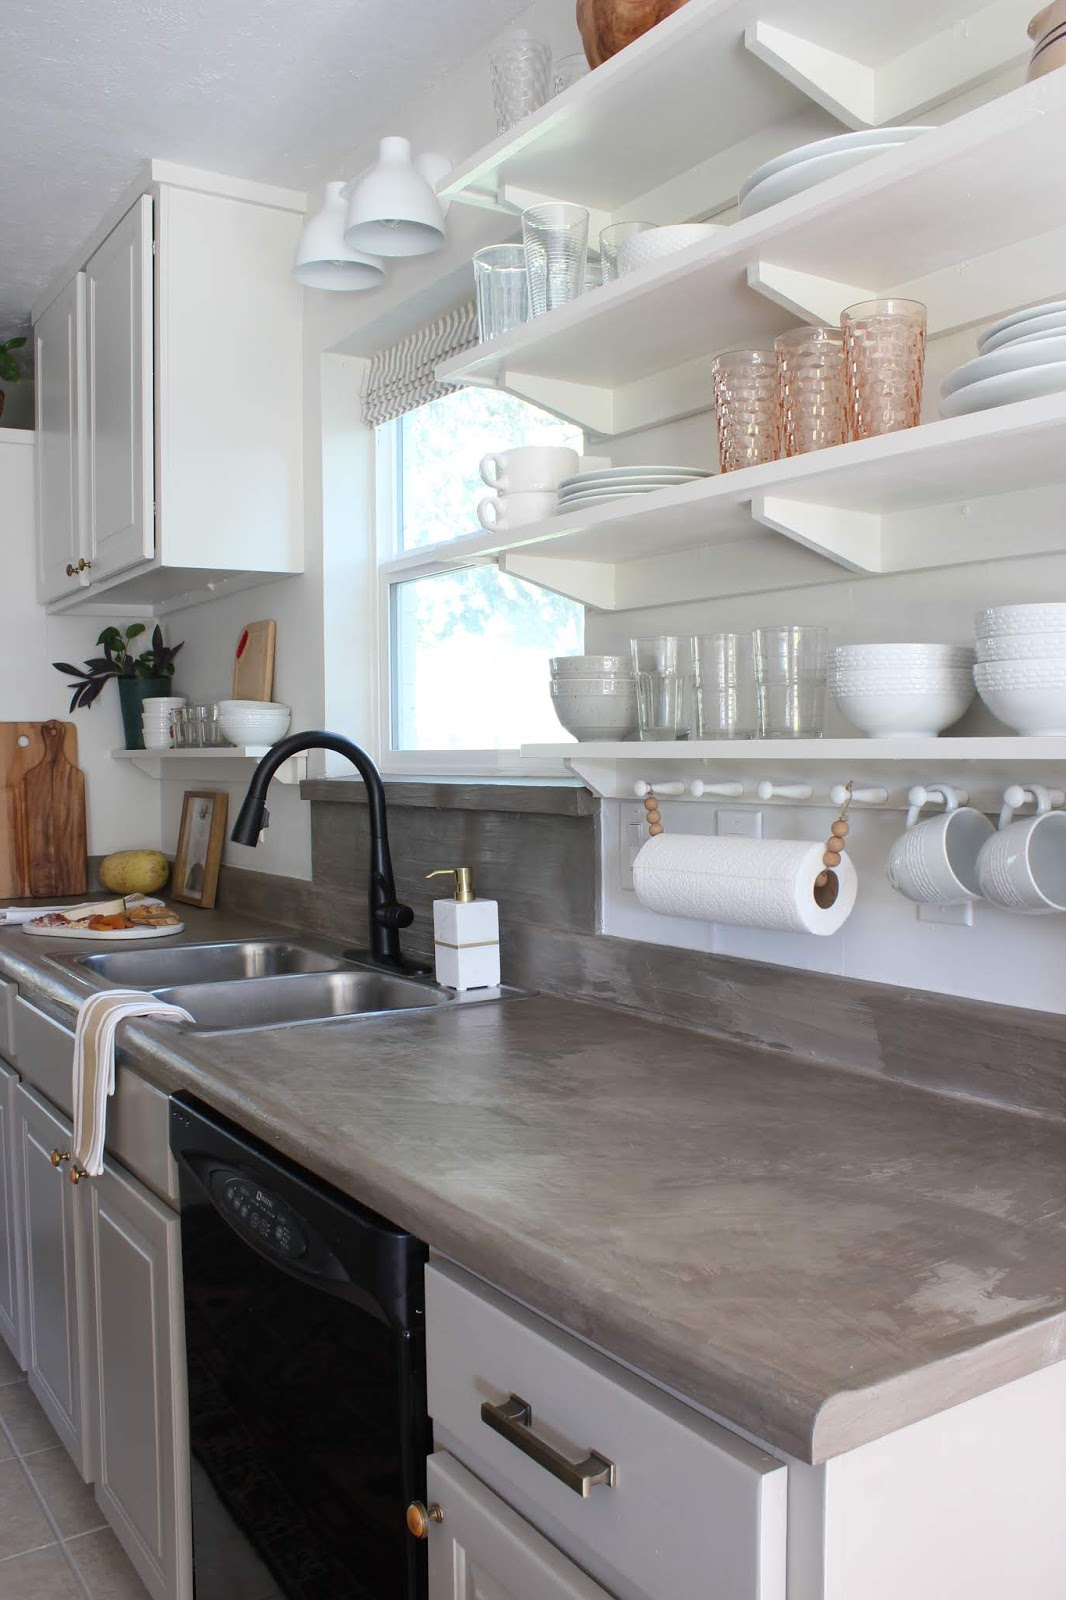 One room challenge budget kitchen makeover galley kitchen, remove soffit and put shelves under raised cabinets | House Homemade